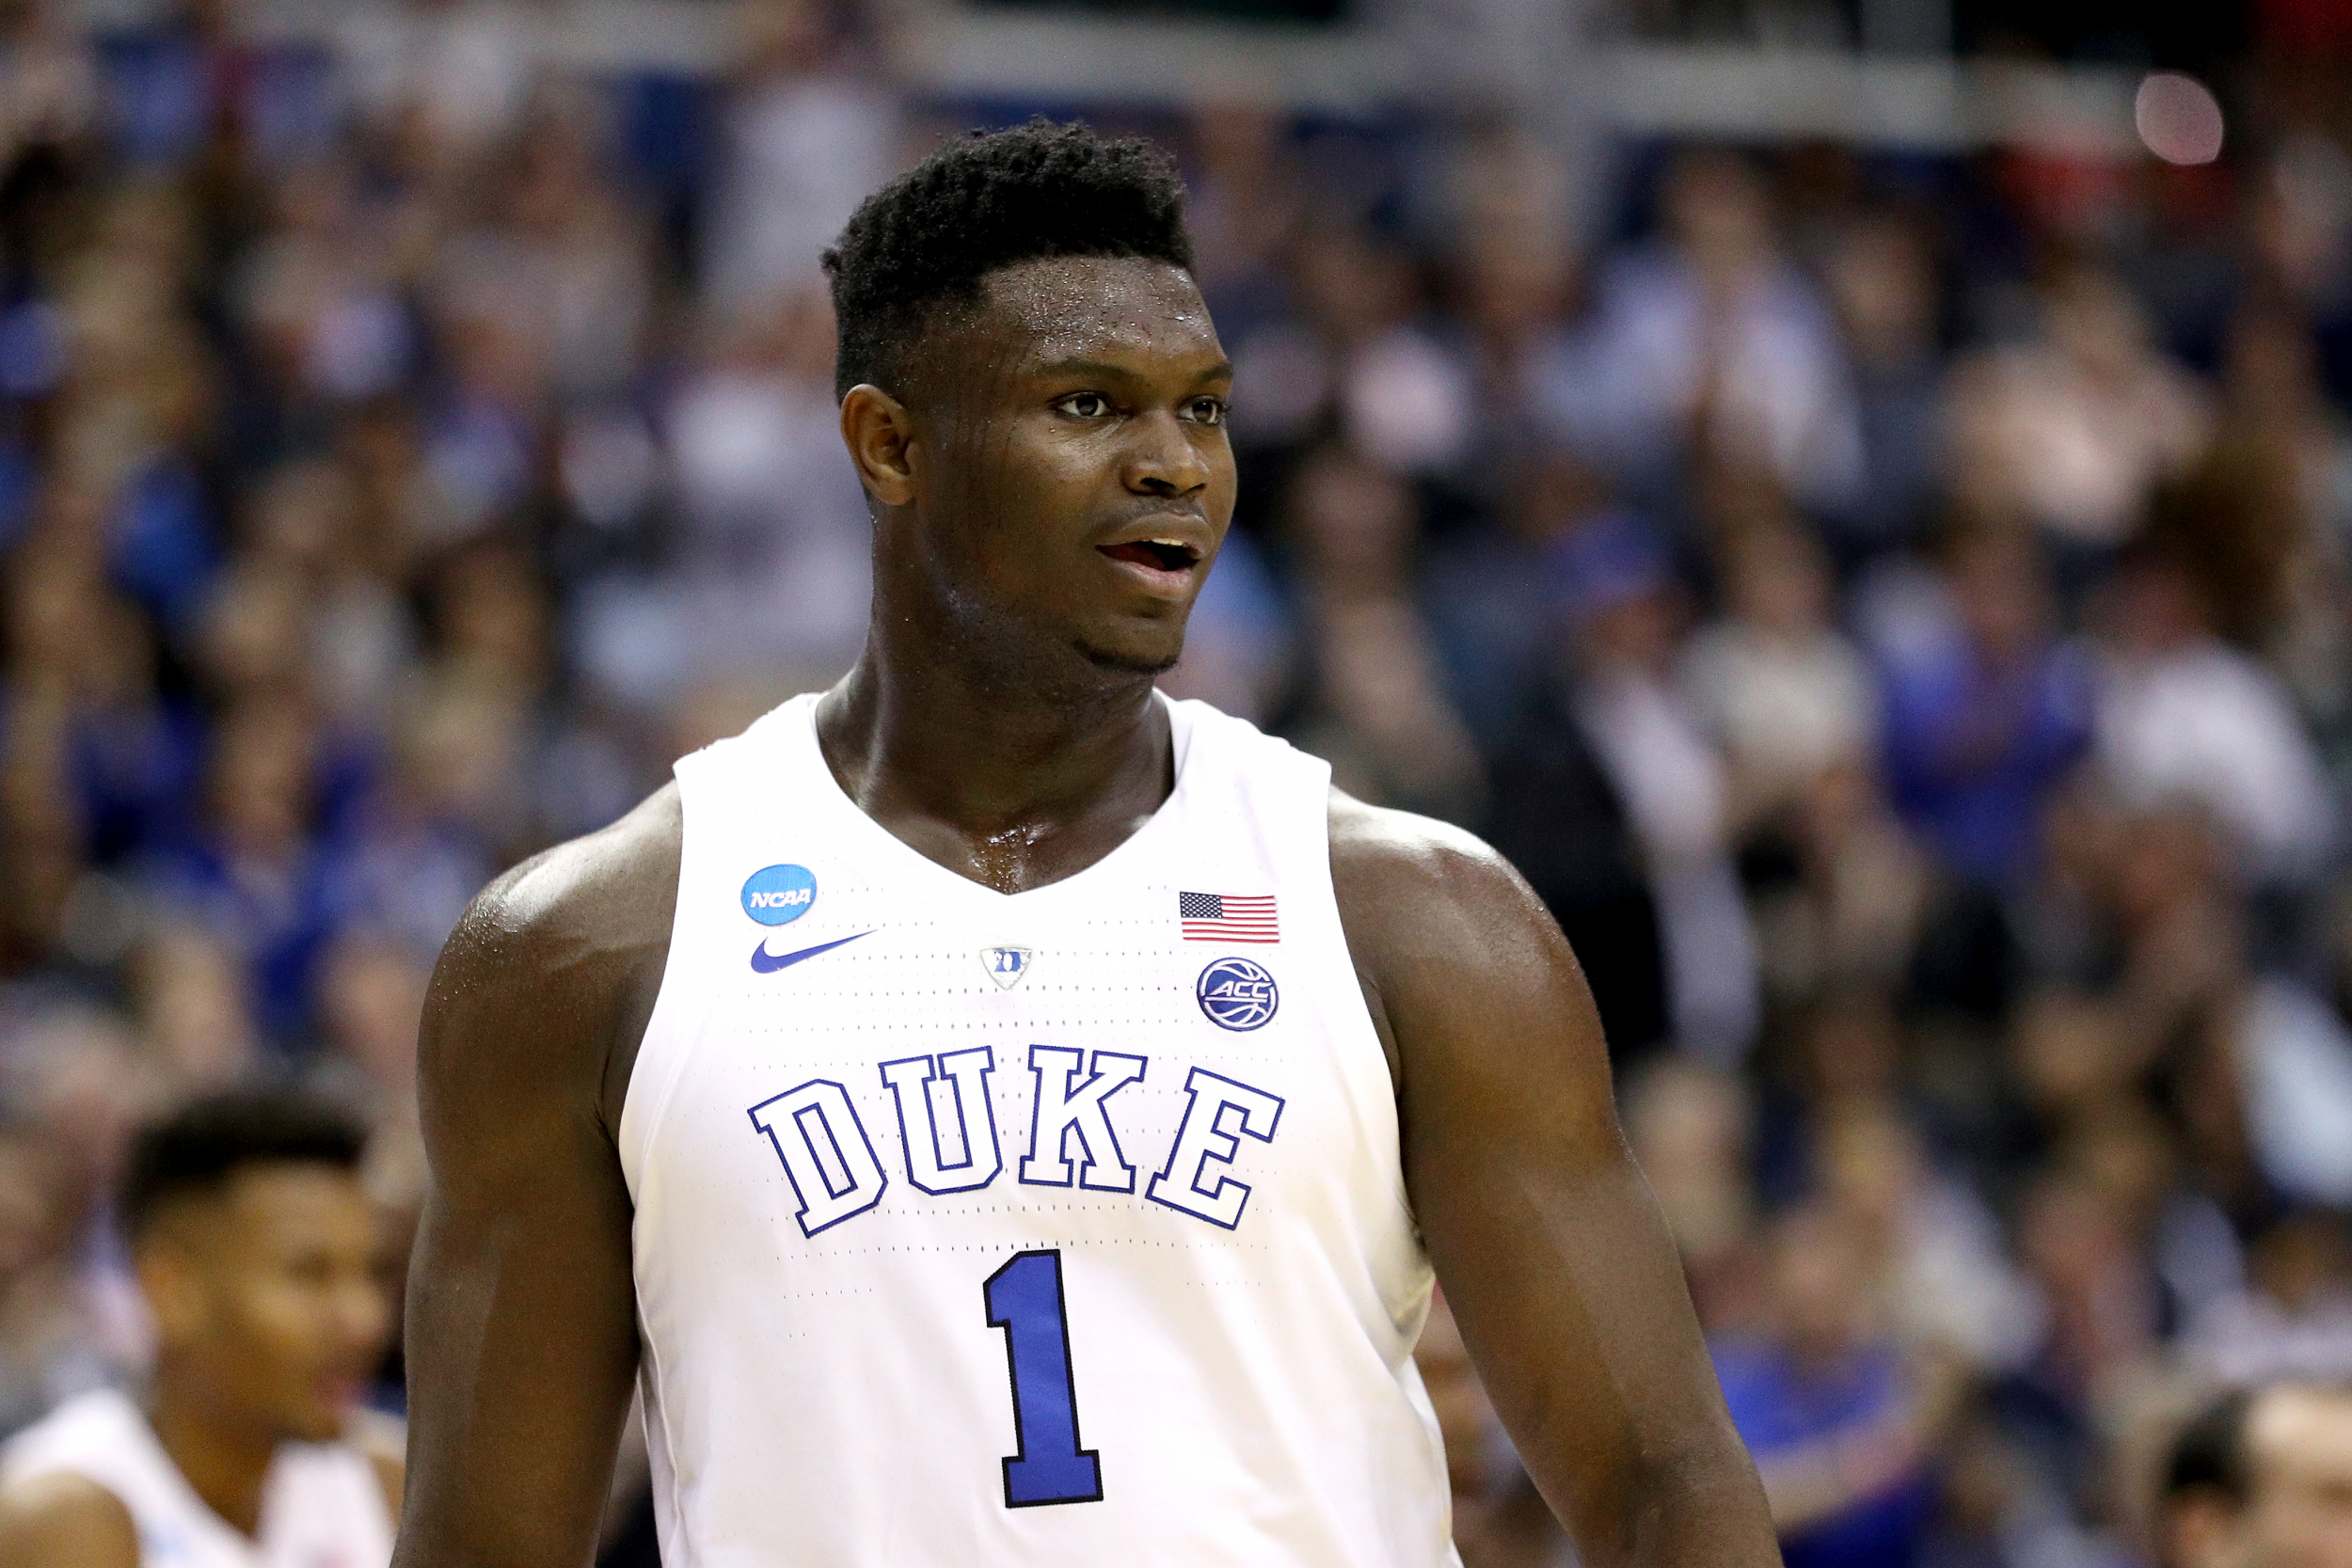 NBA 2019 Draft: After Zion Williamson, Here Are the Other Top 10